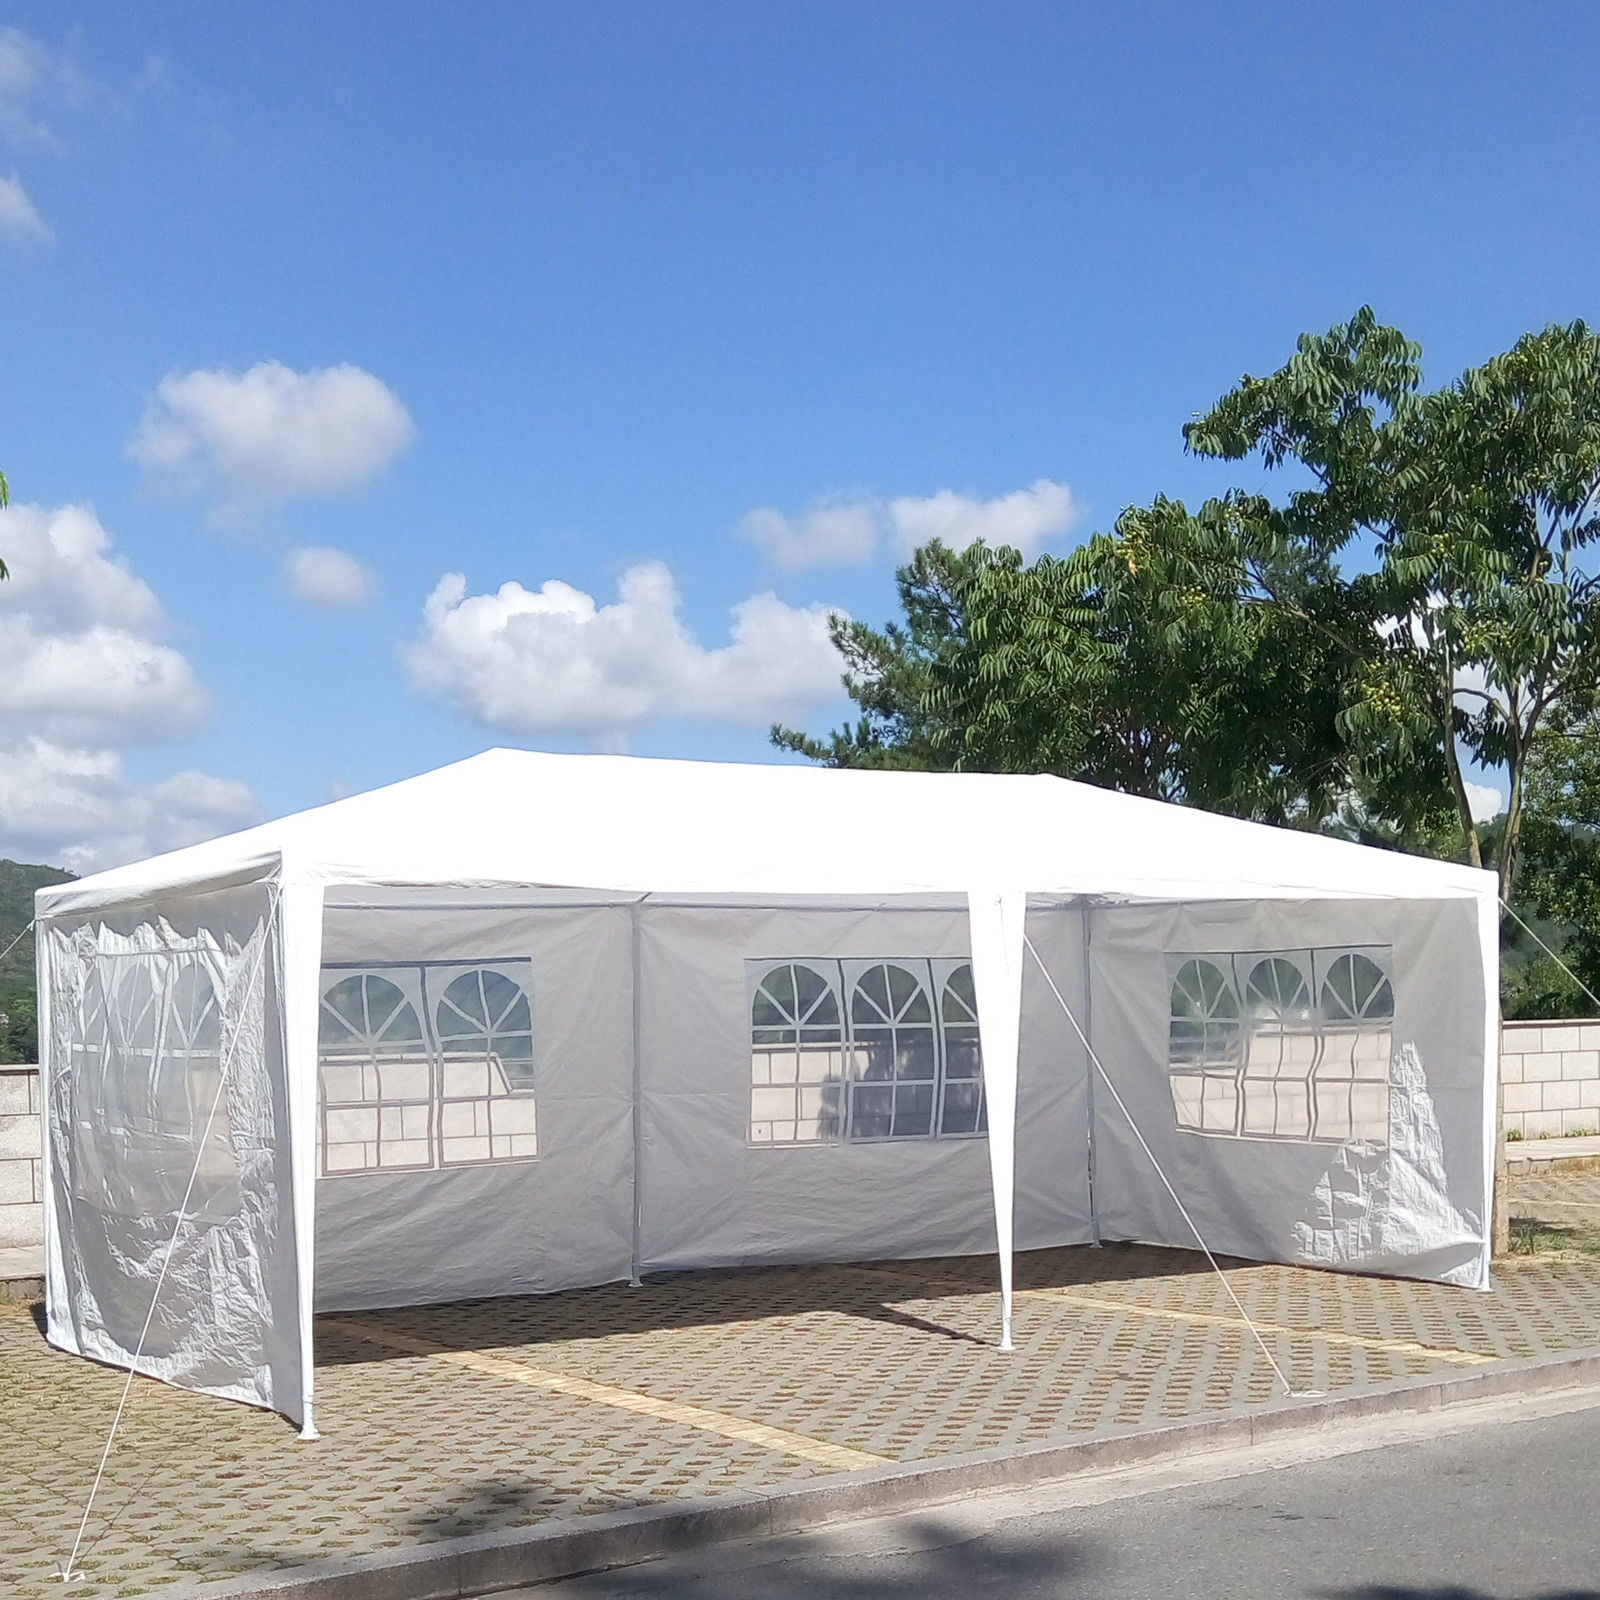 Ktaxon Outdoor 10'x20' Third generation Canopy Party Wedding Tent Heavy Duty Gazebo Pavilion Cater Events w 6 or 4 Side... by